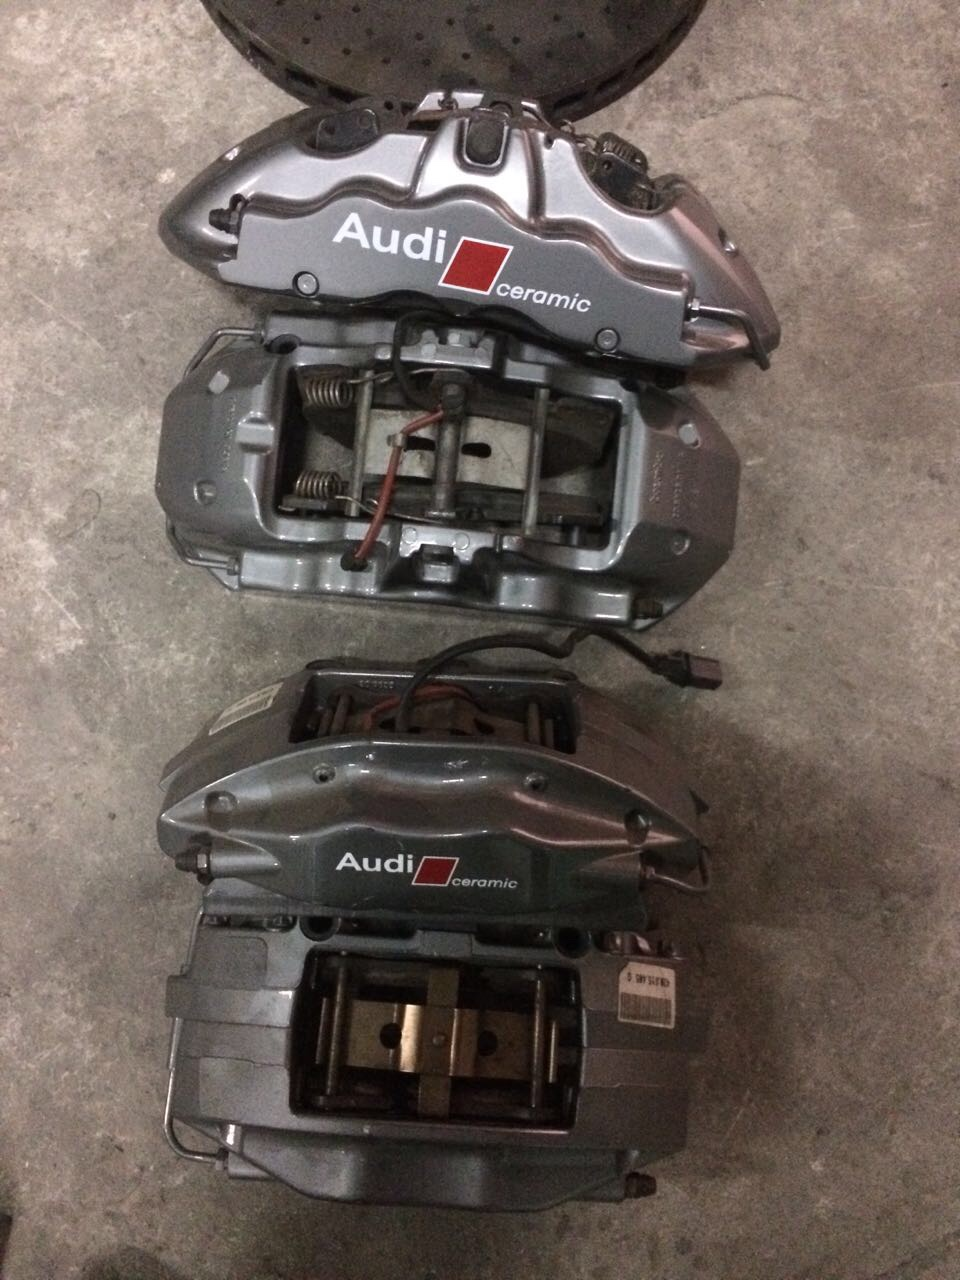 For Sale Oem Audi Rs4 Rs5 R8 Ceramic Brake Calipers Pads